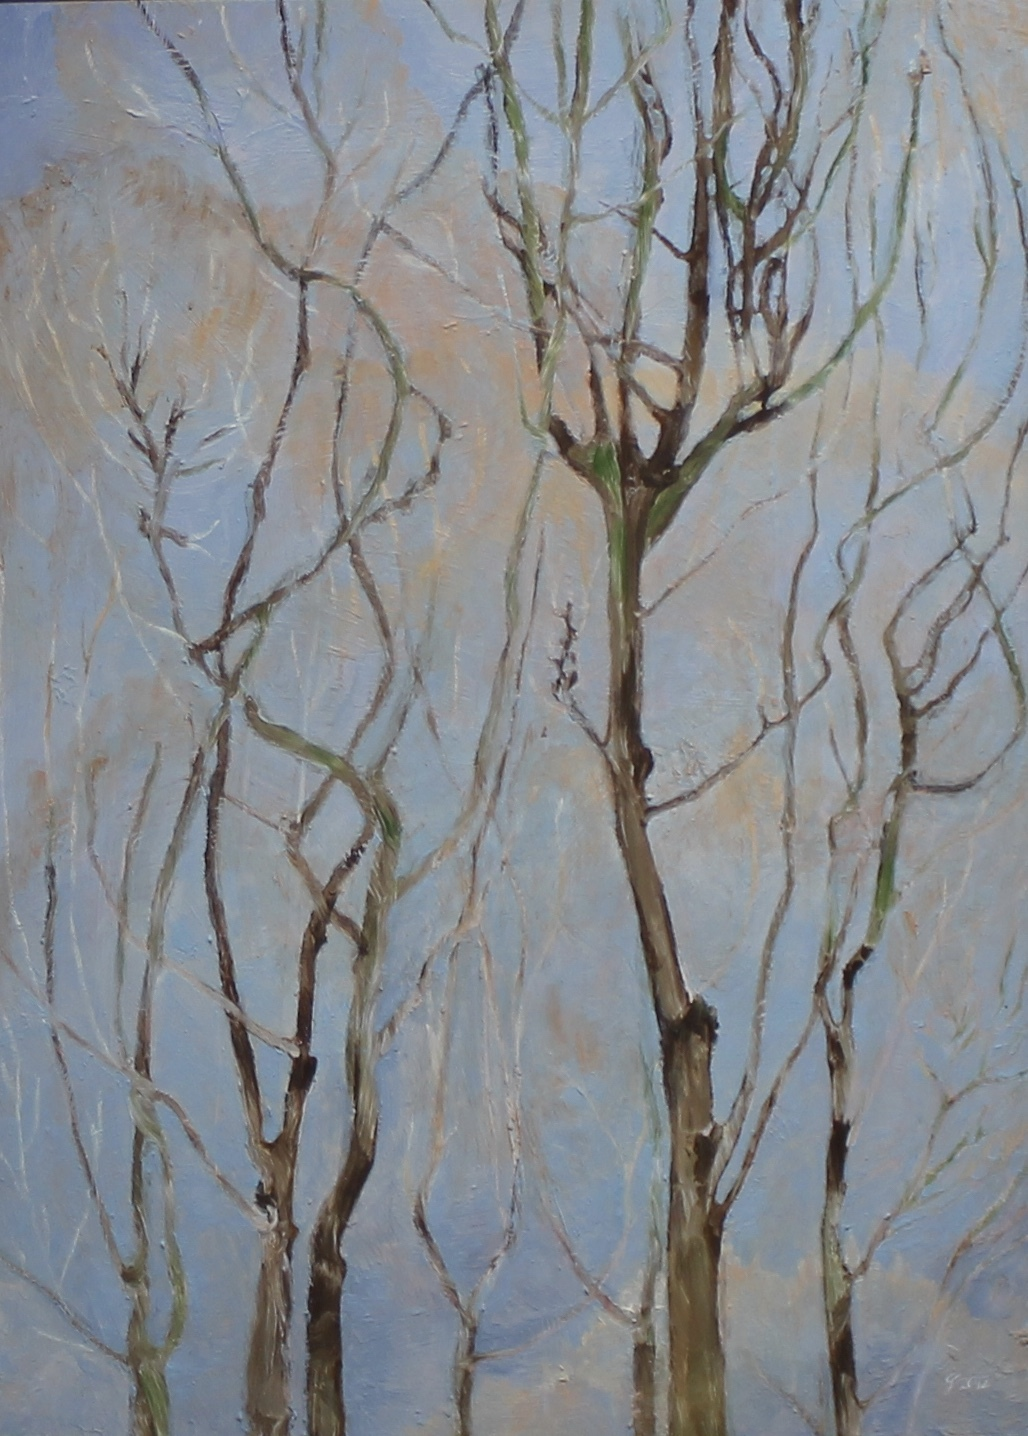 TREES ON BLUE - 25 X 18 - OIL ON PANEL - 2012